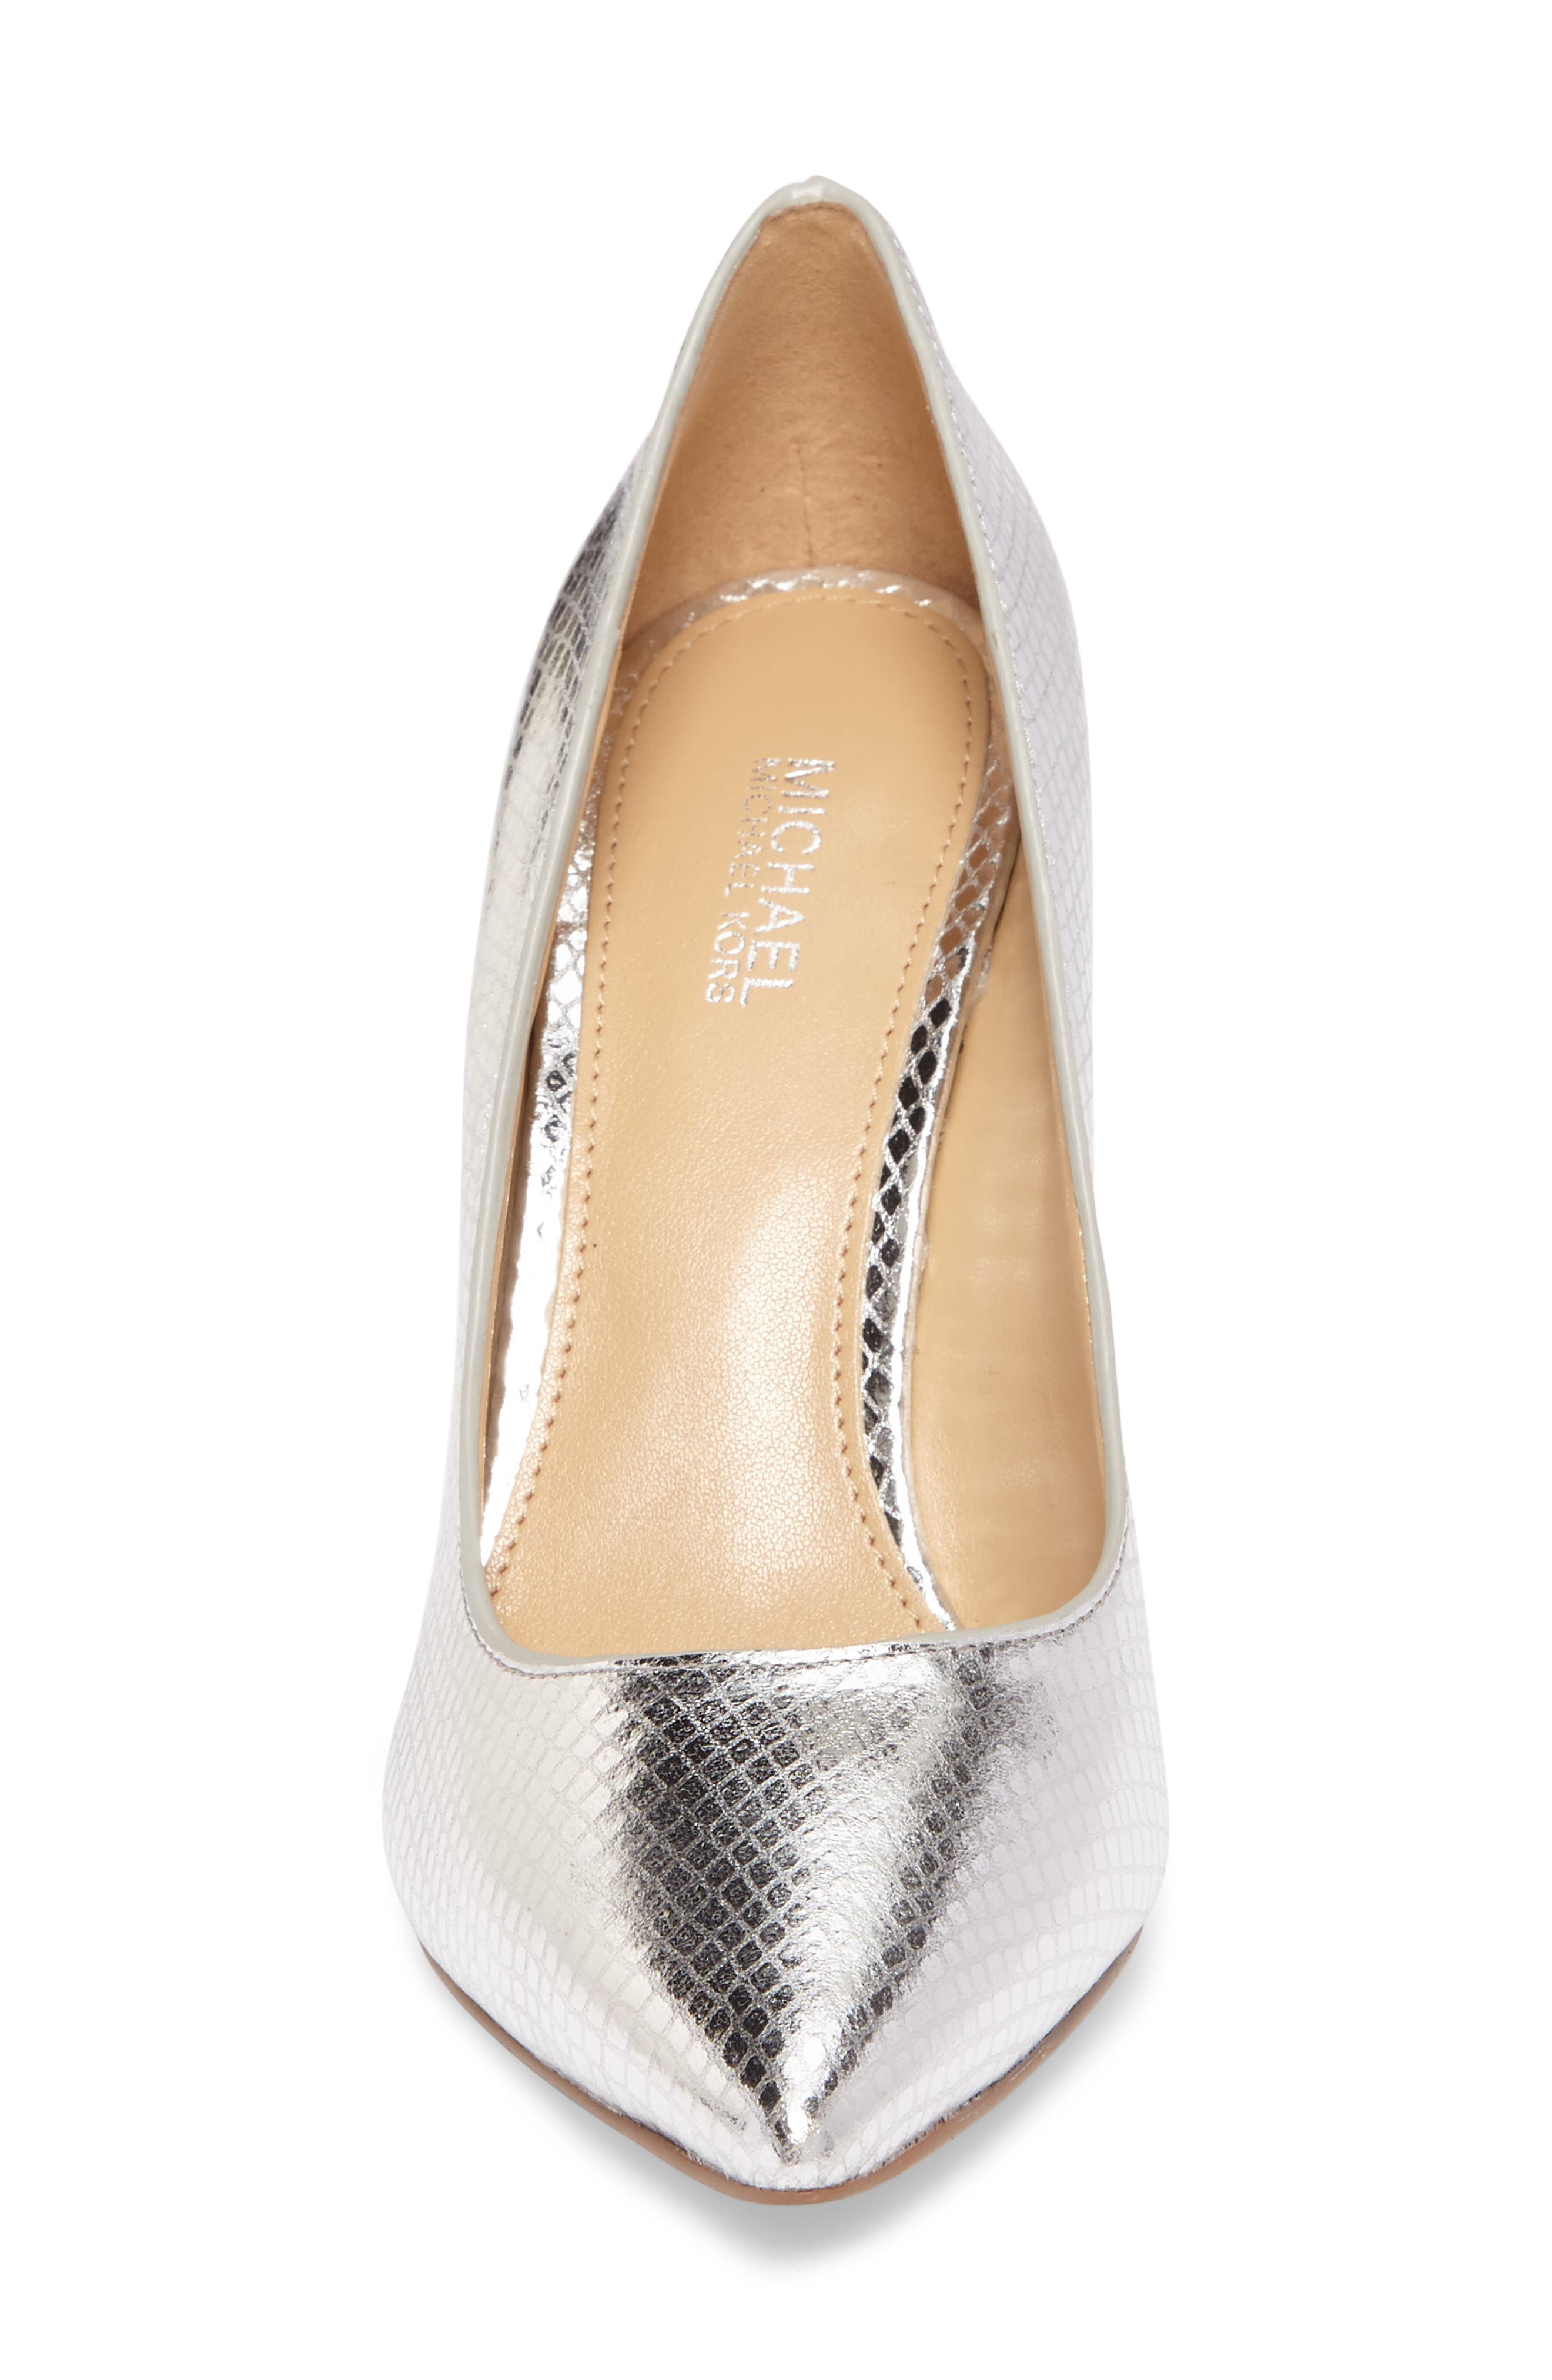 Claire Pointy Toe Pump,                             Alternate thumbnail 4, color,                             040